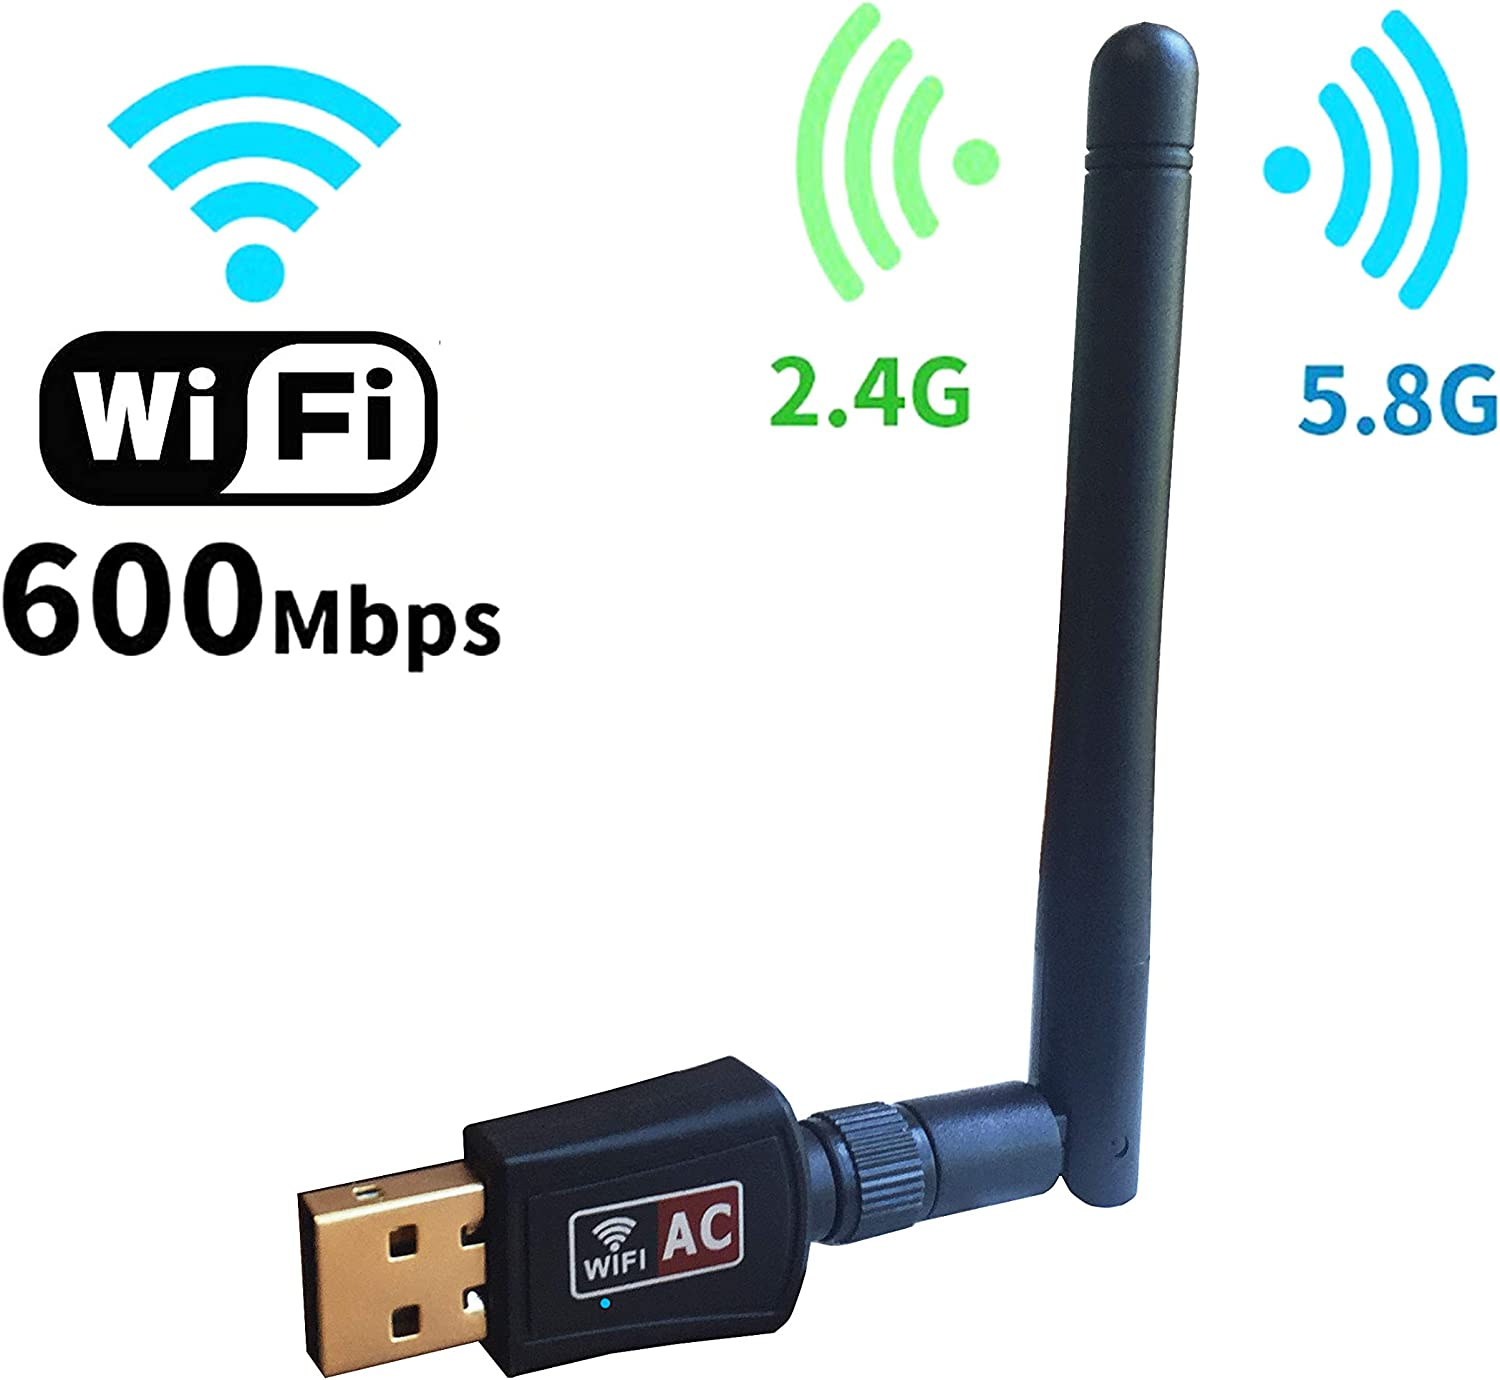 600Mbps Dual Band (2.4Ghz/5.8Ghz) Wireless USB Wifi Adapter for Laptop and Desktop(802.11N/G/B/AC Antenna Network Lan Card for Windows XP/Vista/7/8/10,Mac OS,Linux)